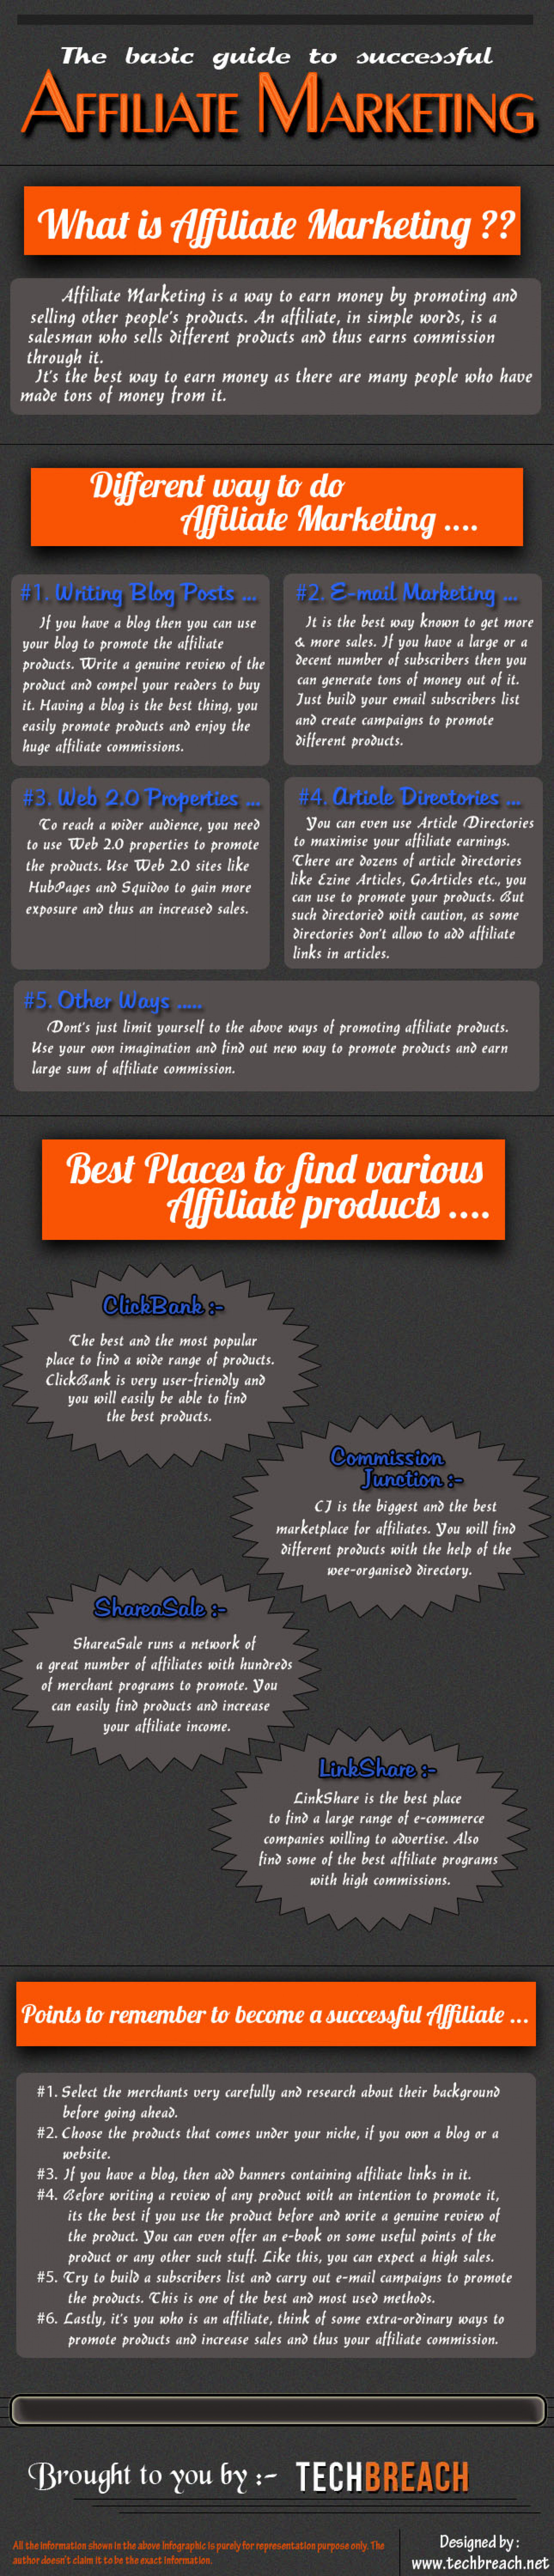 The basic guide to successful Affiliate Marketing. Infographic